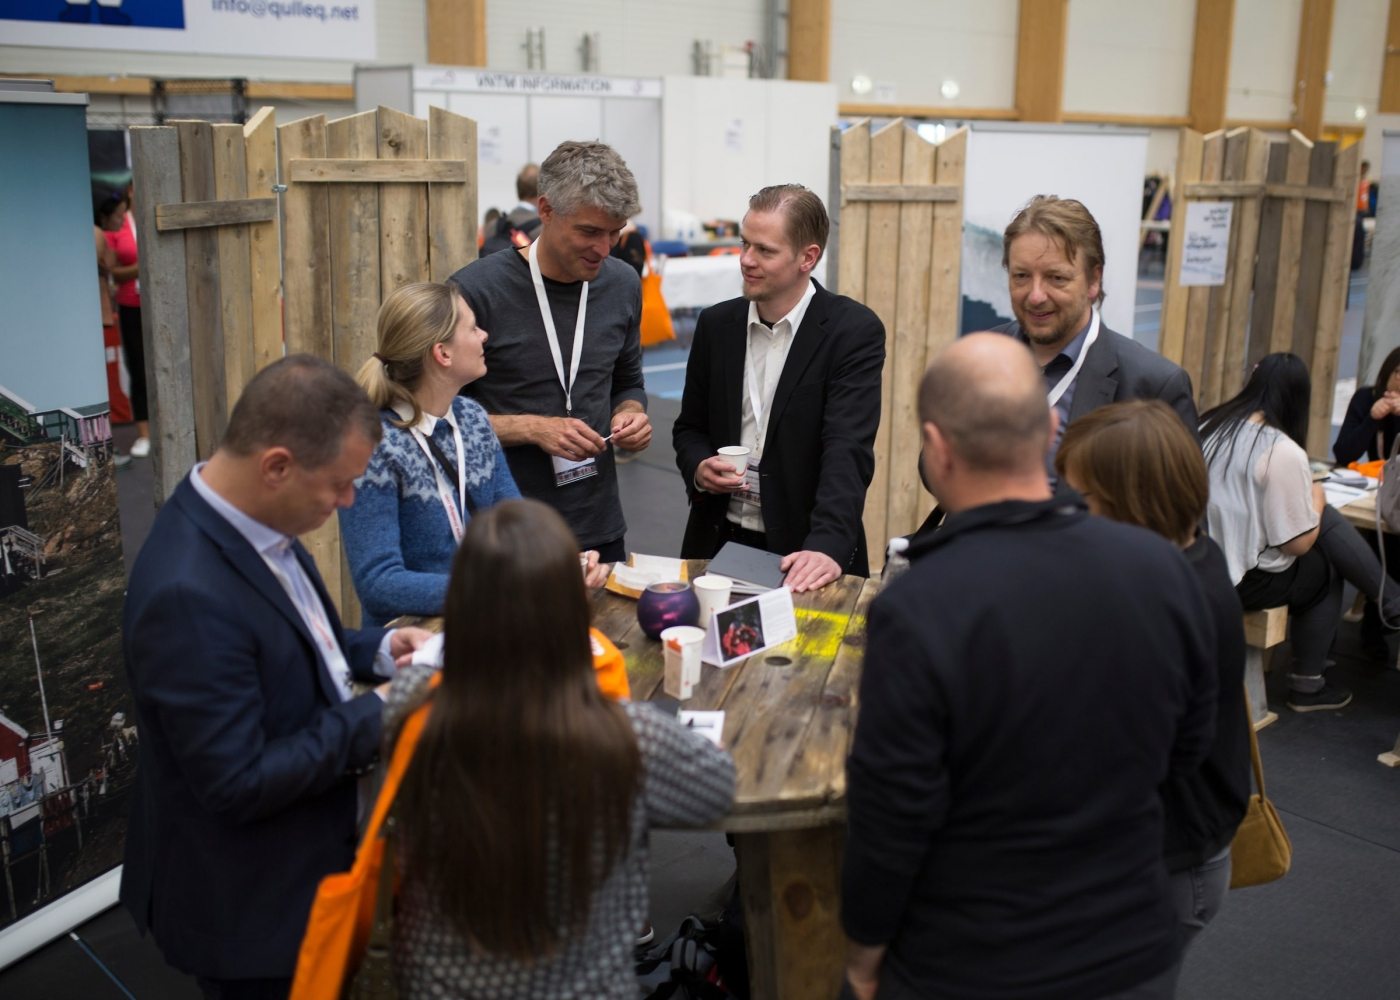 Event participants casually networking over coffee. Photo by Aningaaq Rosing Carlsen – Visit Greenland